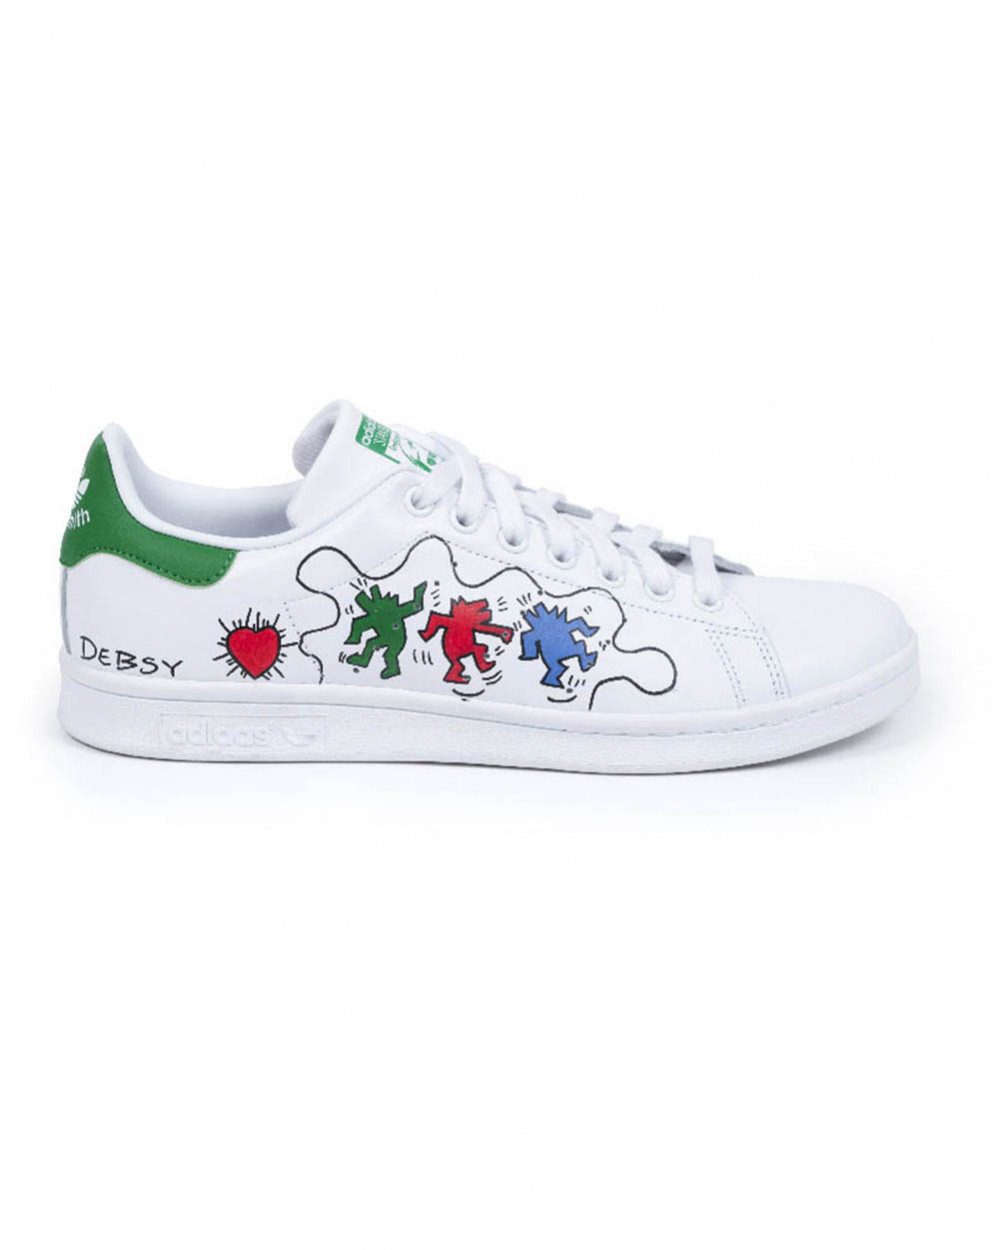 Tennis shoes Adidas by Debsy Stan Smith